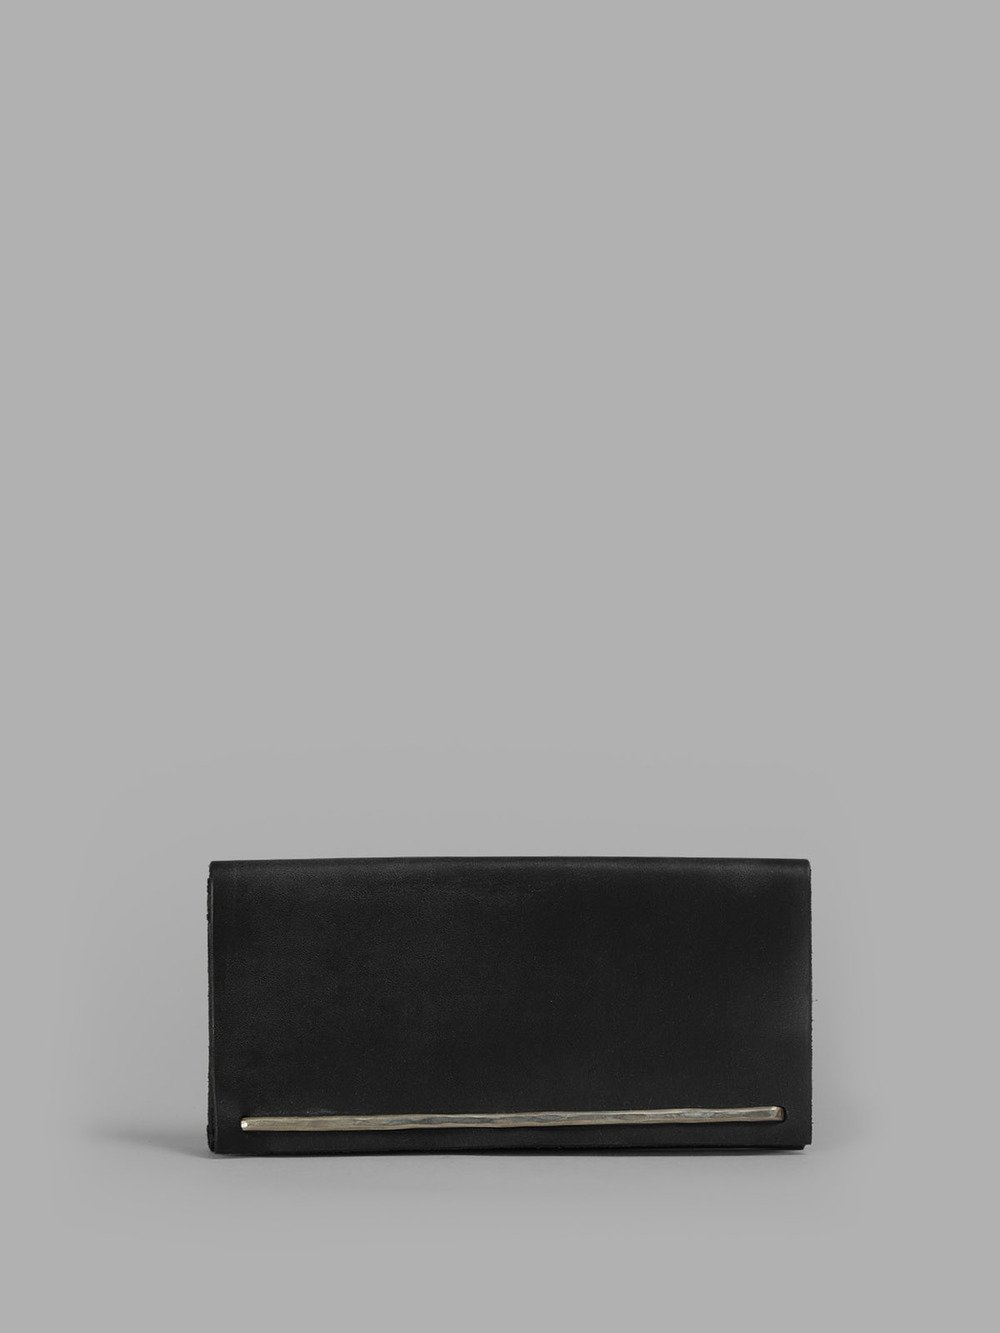 Werkstatt Munchen Note Black Case Brace Hammered Wallet